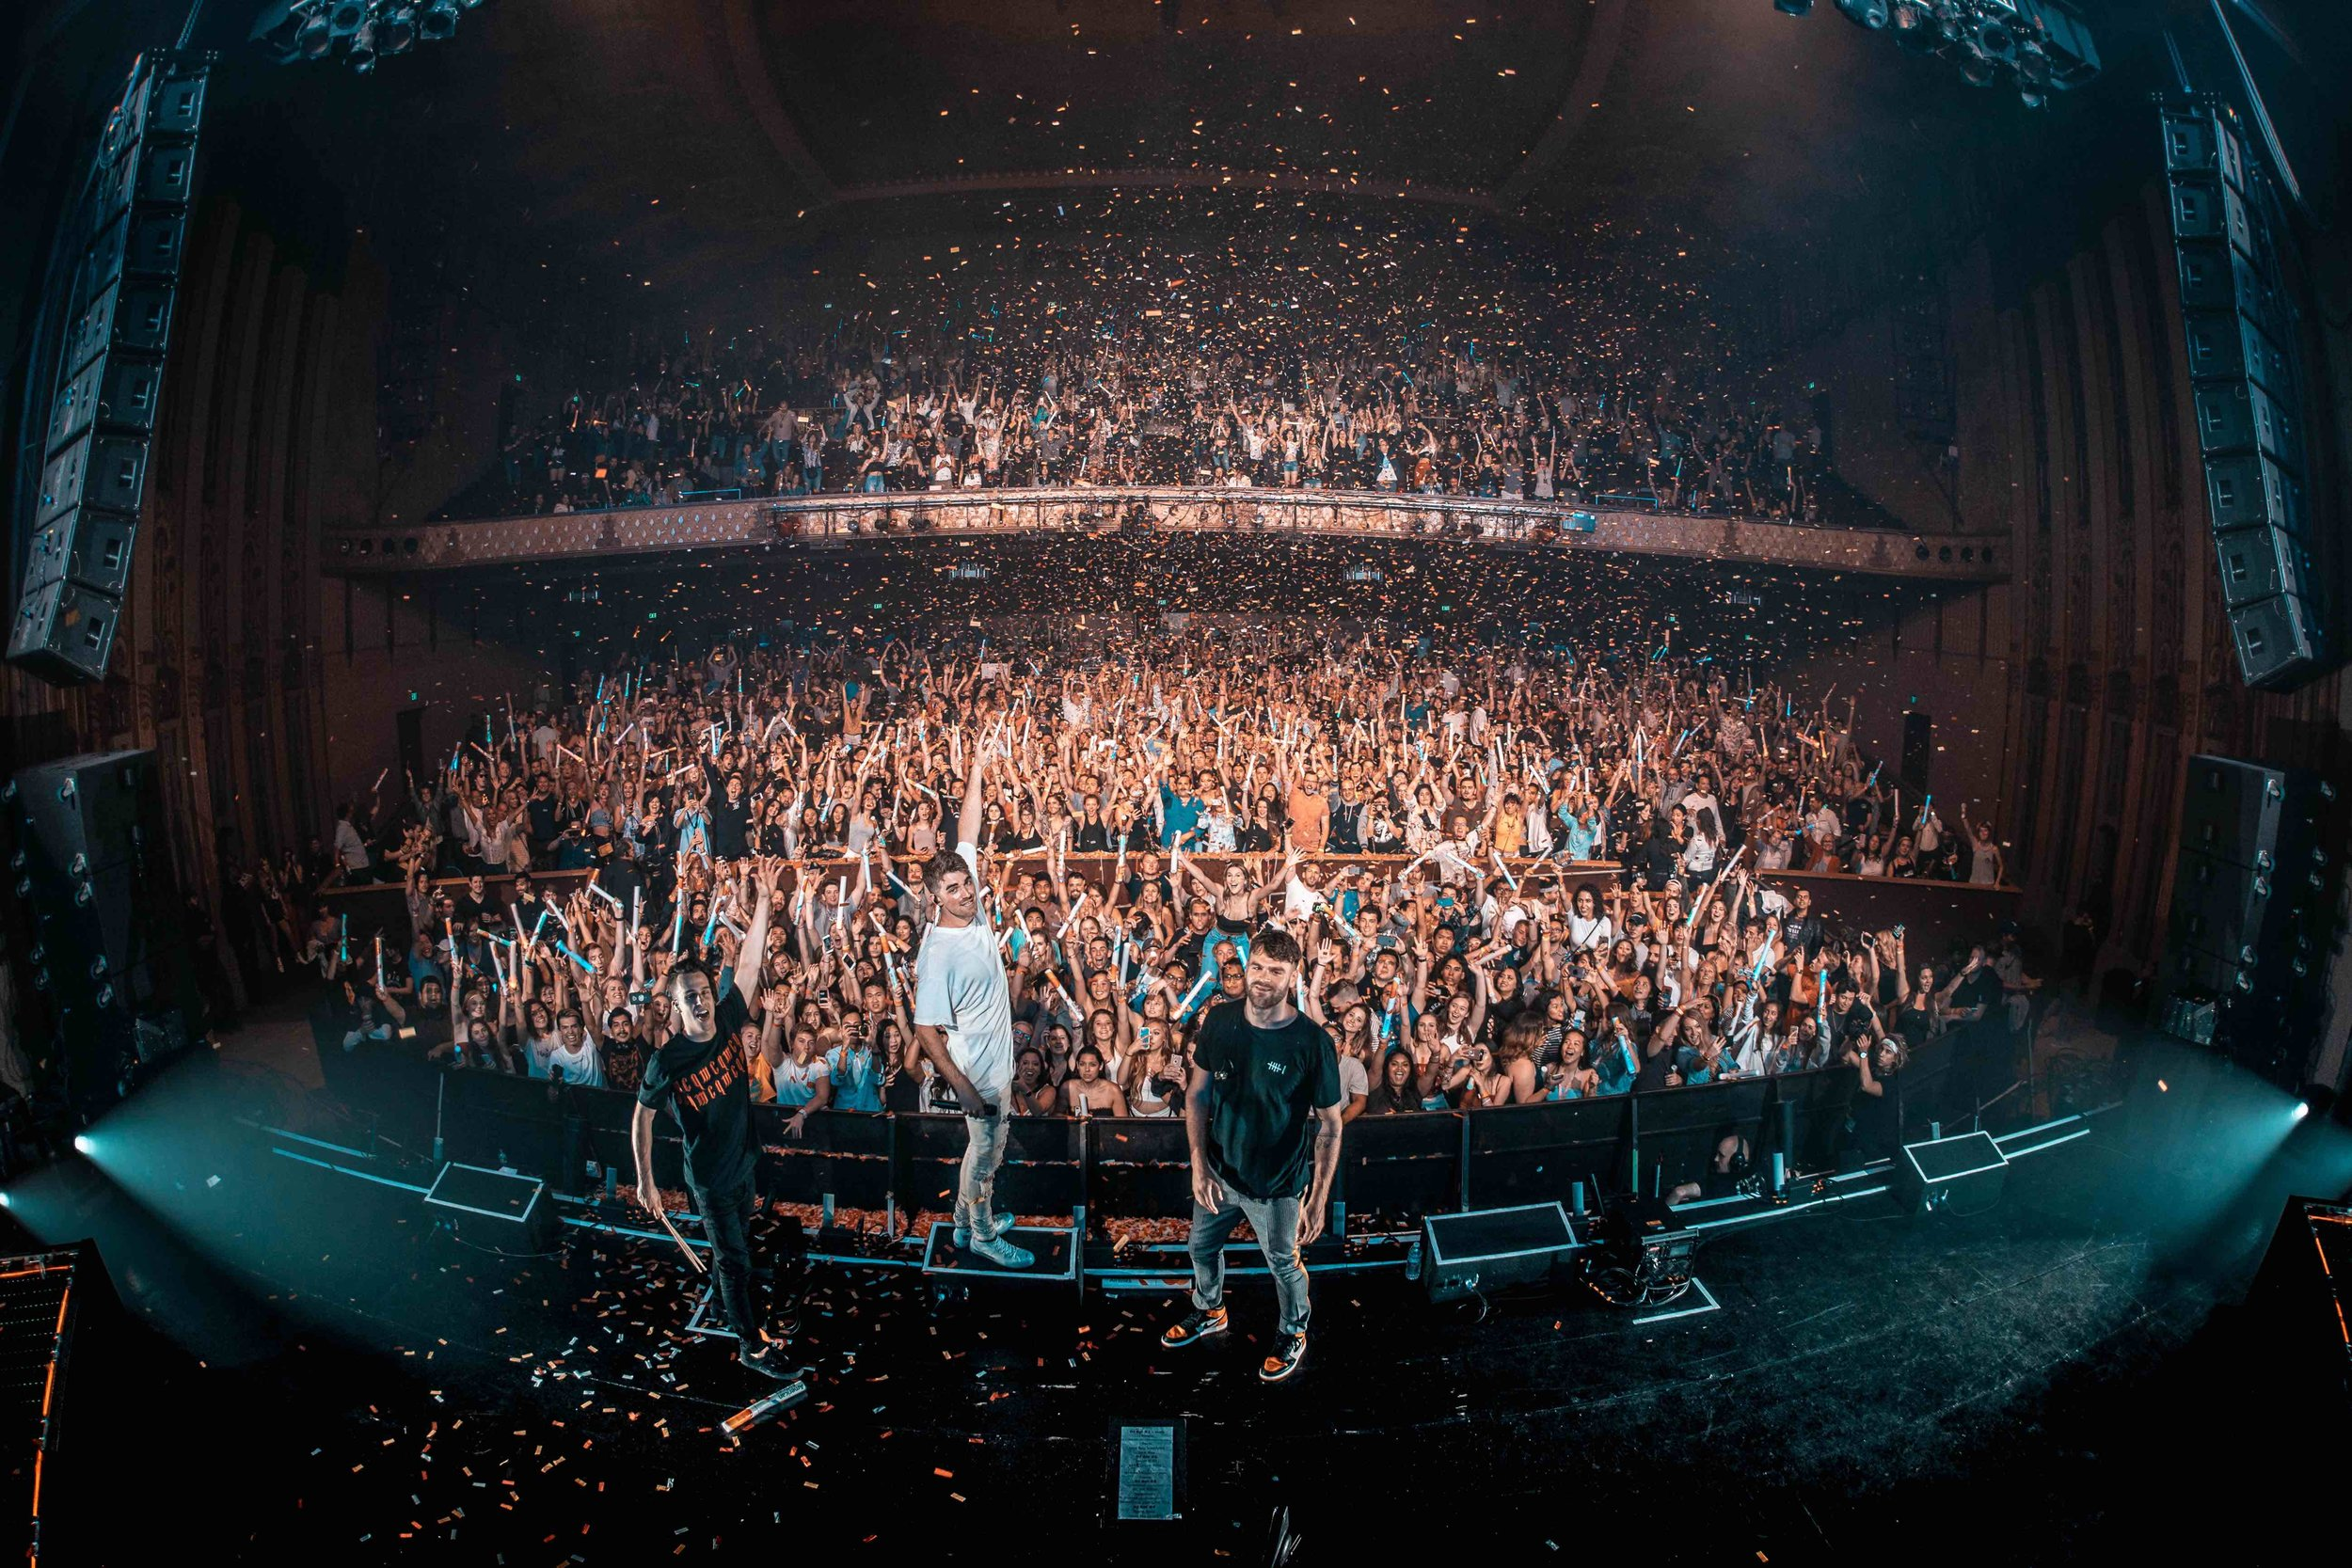 American Airlines and MasterCard present The Chainsmokers; LA.jpg